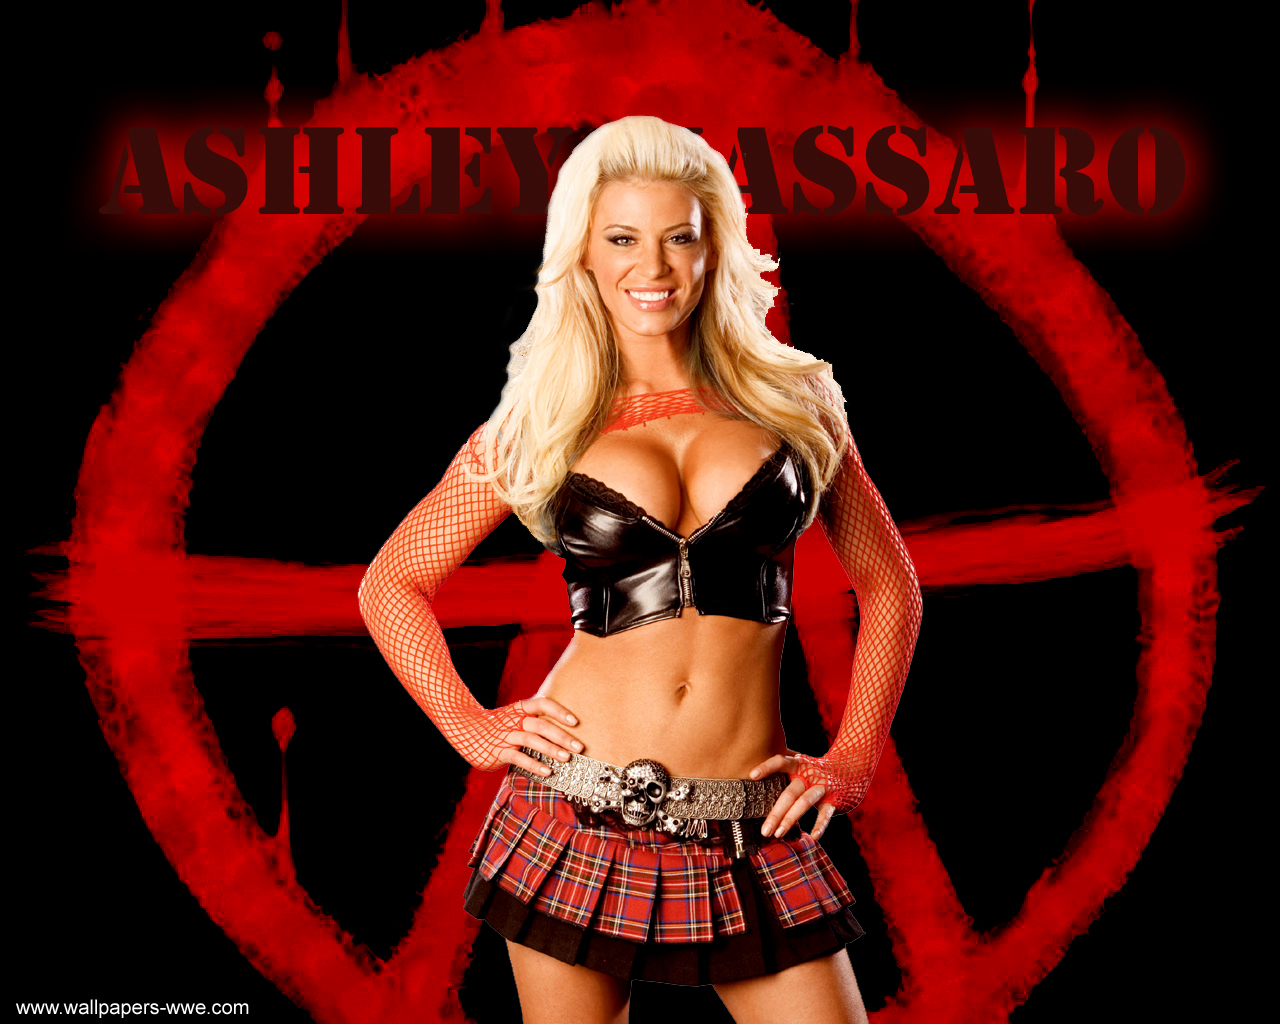 http://2.bp.blogspot.com/-akWW2V1N-Z4/T5go-dsXufI/AAAAAAAAJWo/VVaiFZdPfoo/s1600/WWE+Ashley+Massaro+HD+Wallpapers+2012_5.jpg